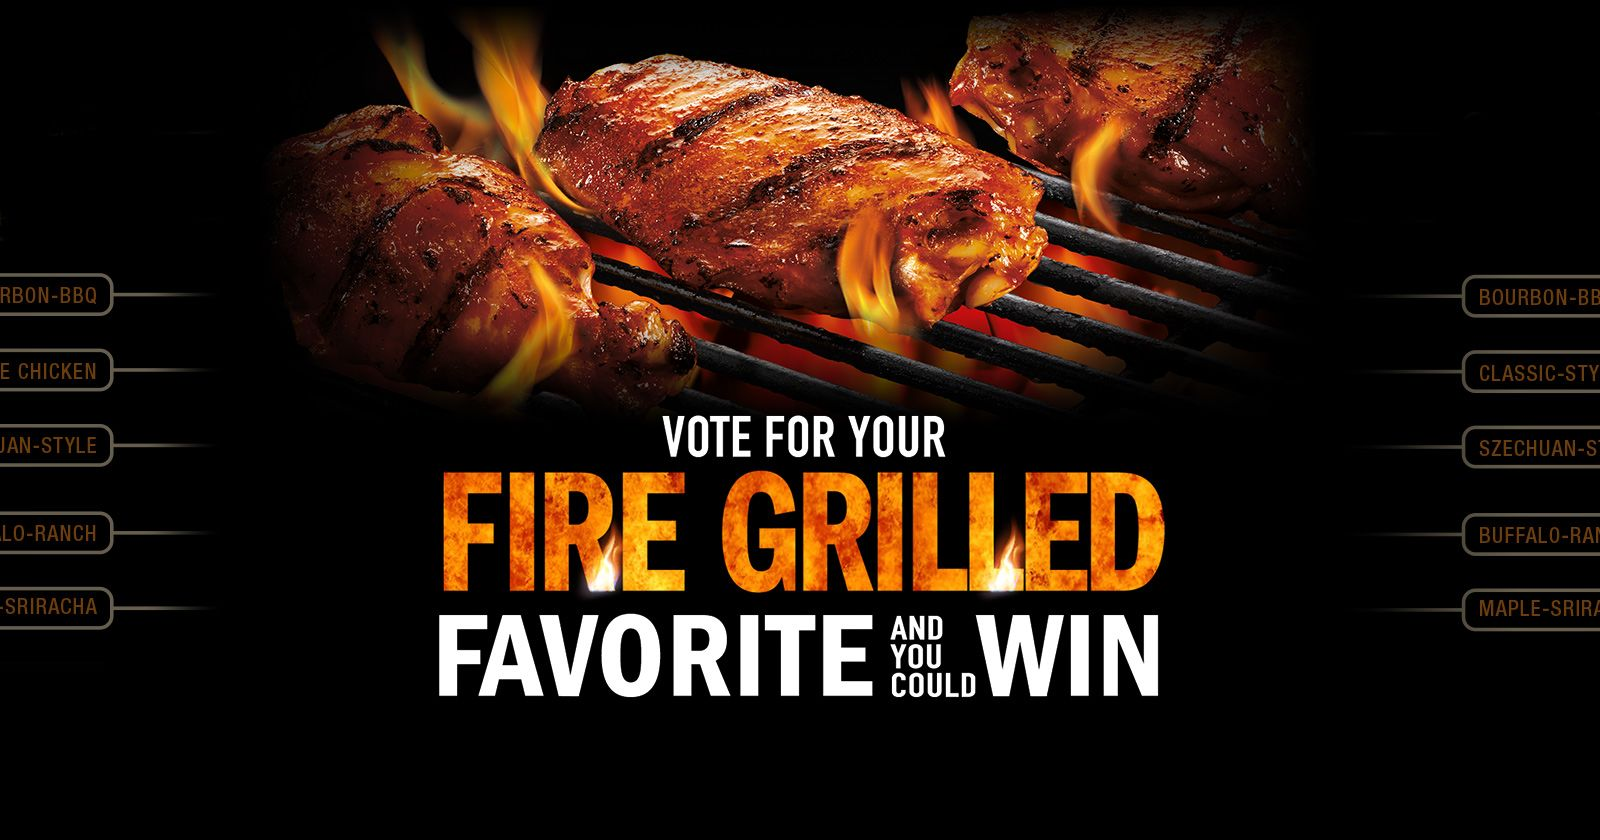 cooked perfect fire grilled flavor bracket 2017 sweepstakes slider